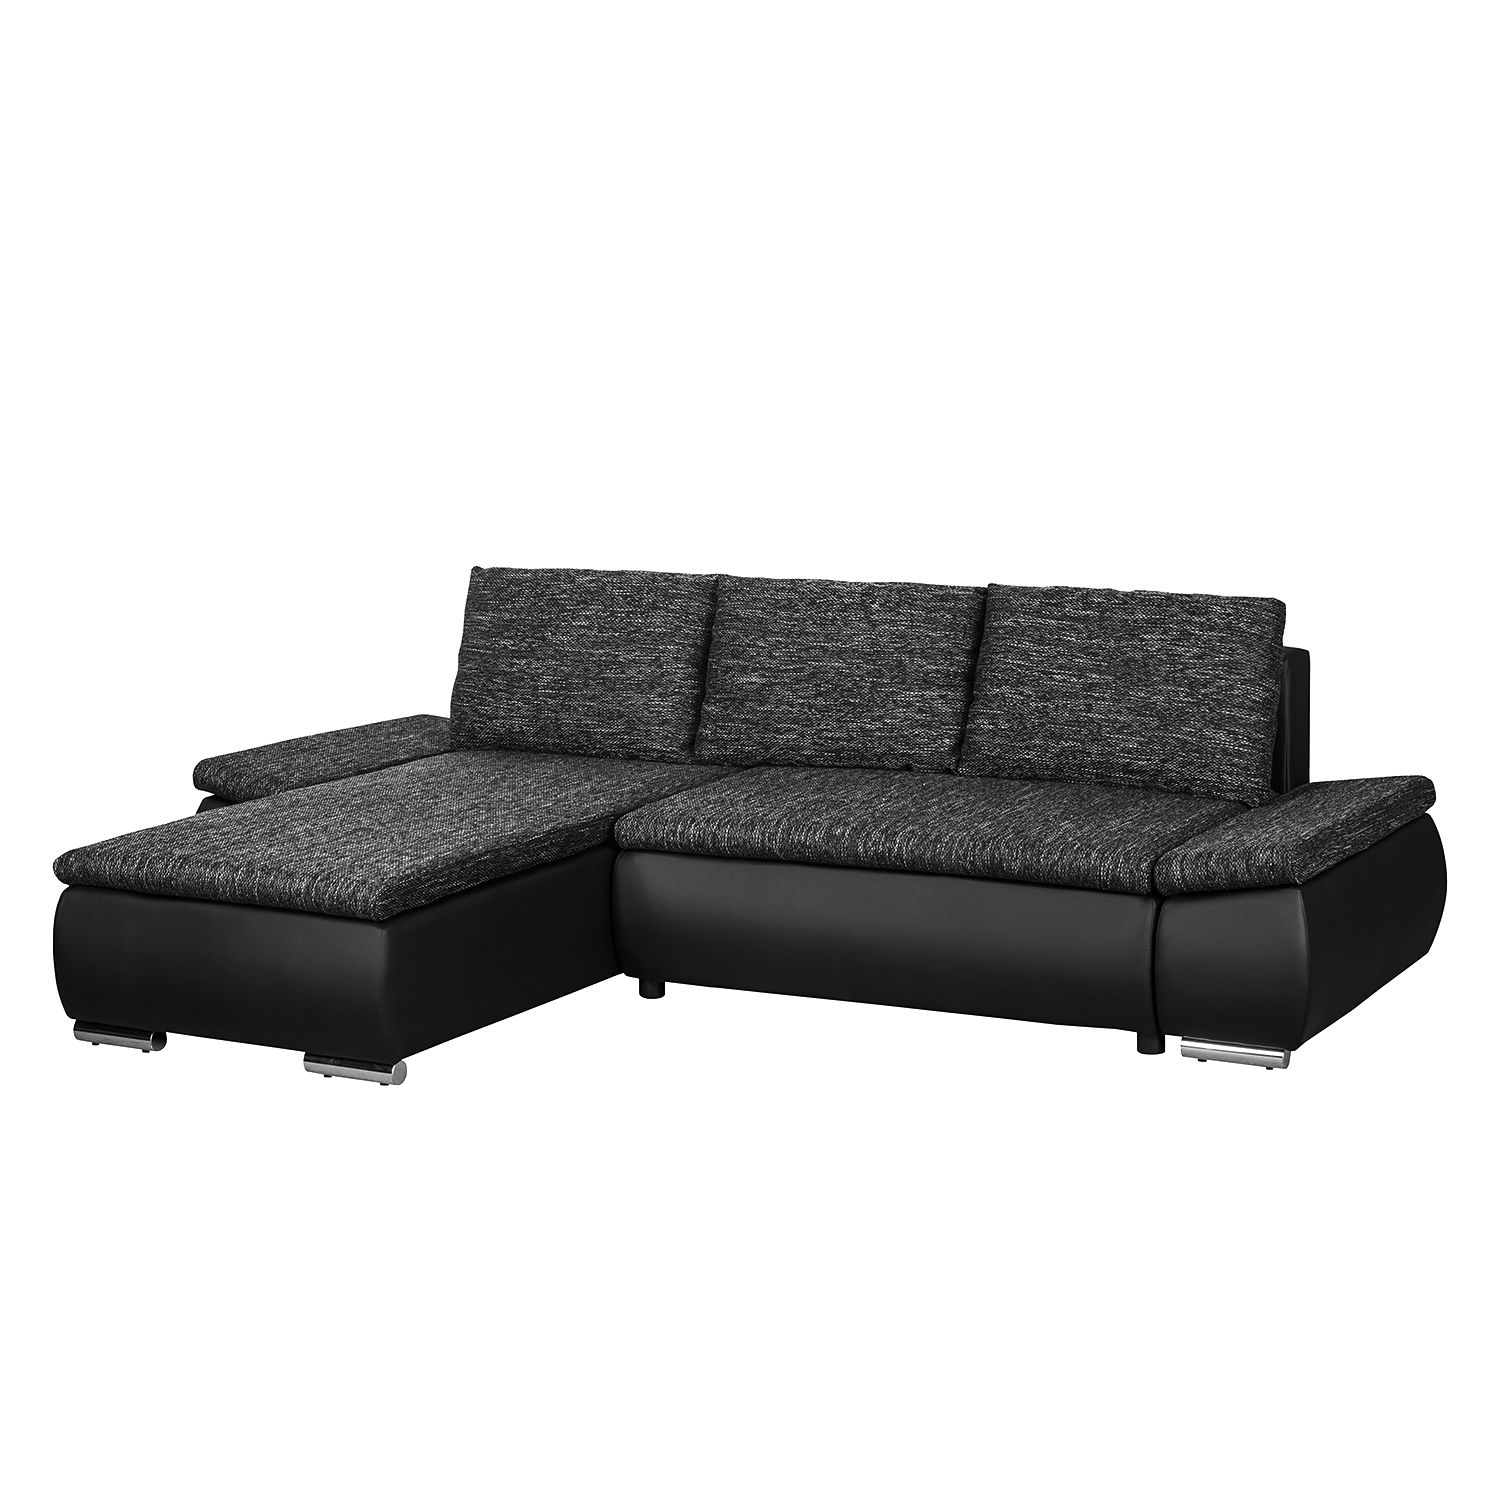 ecksofa mit schlaffunktion bei poco inspirierendes design f r wohnm bel. Black Bedroom Furniture Sets. Home Design Ideas